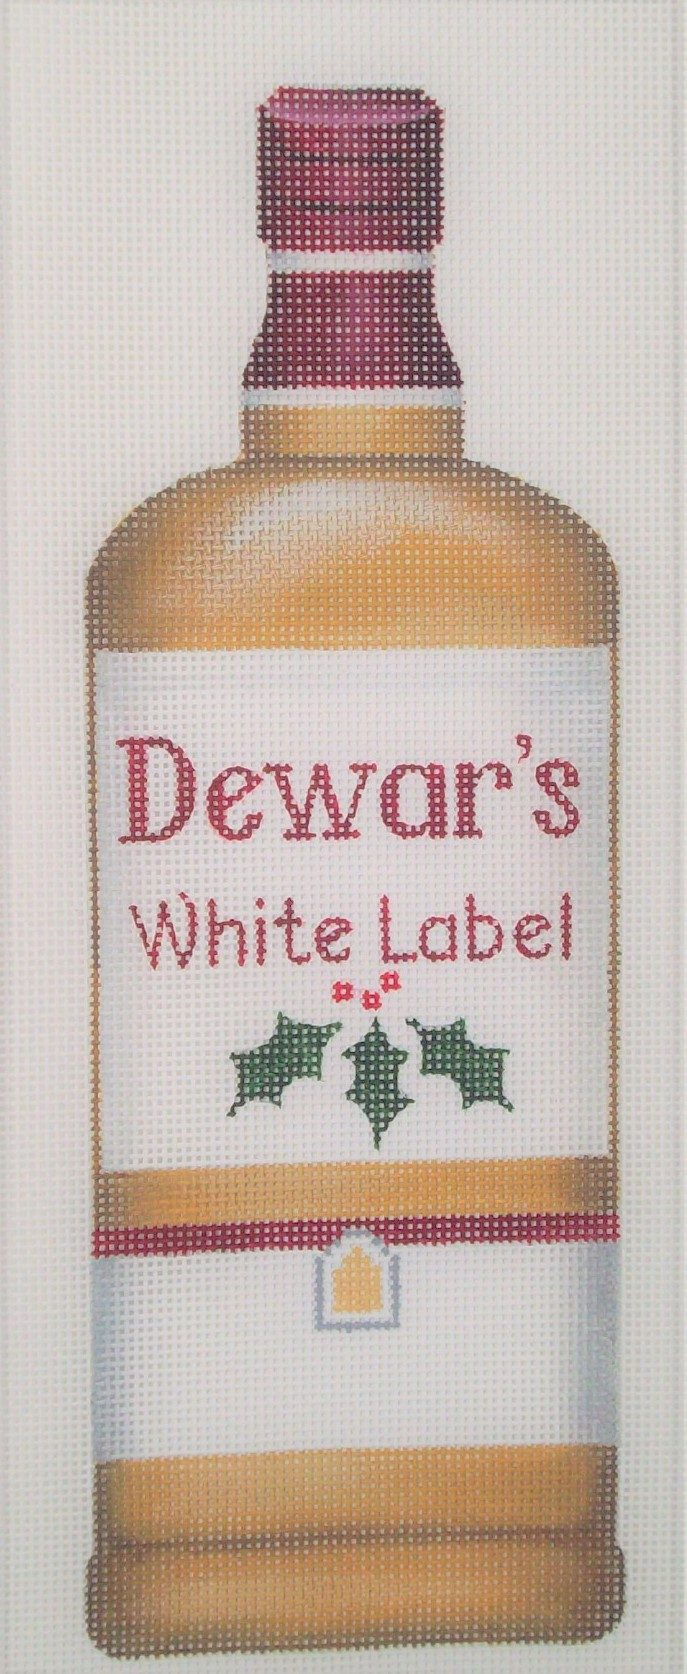 Dewar's Scotch Ornament